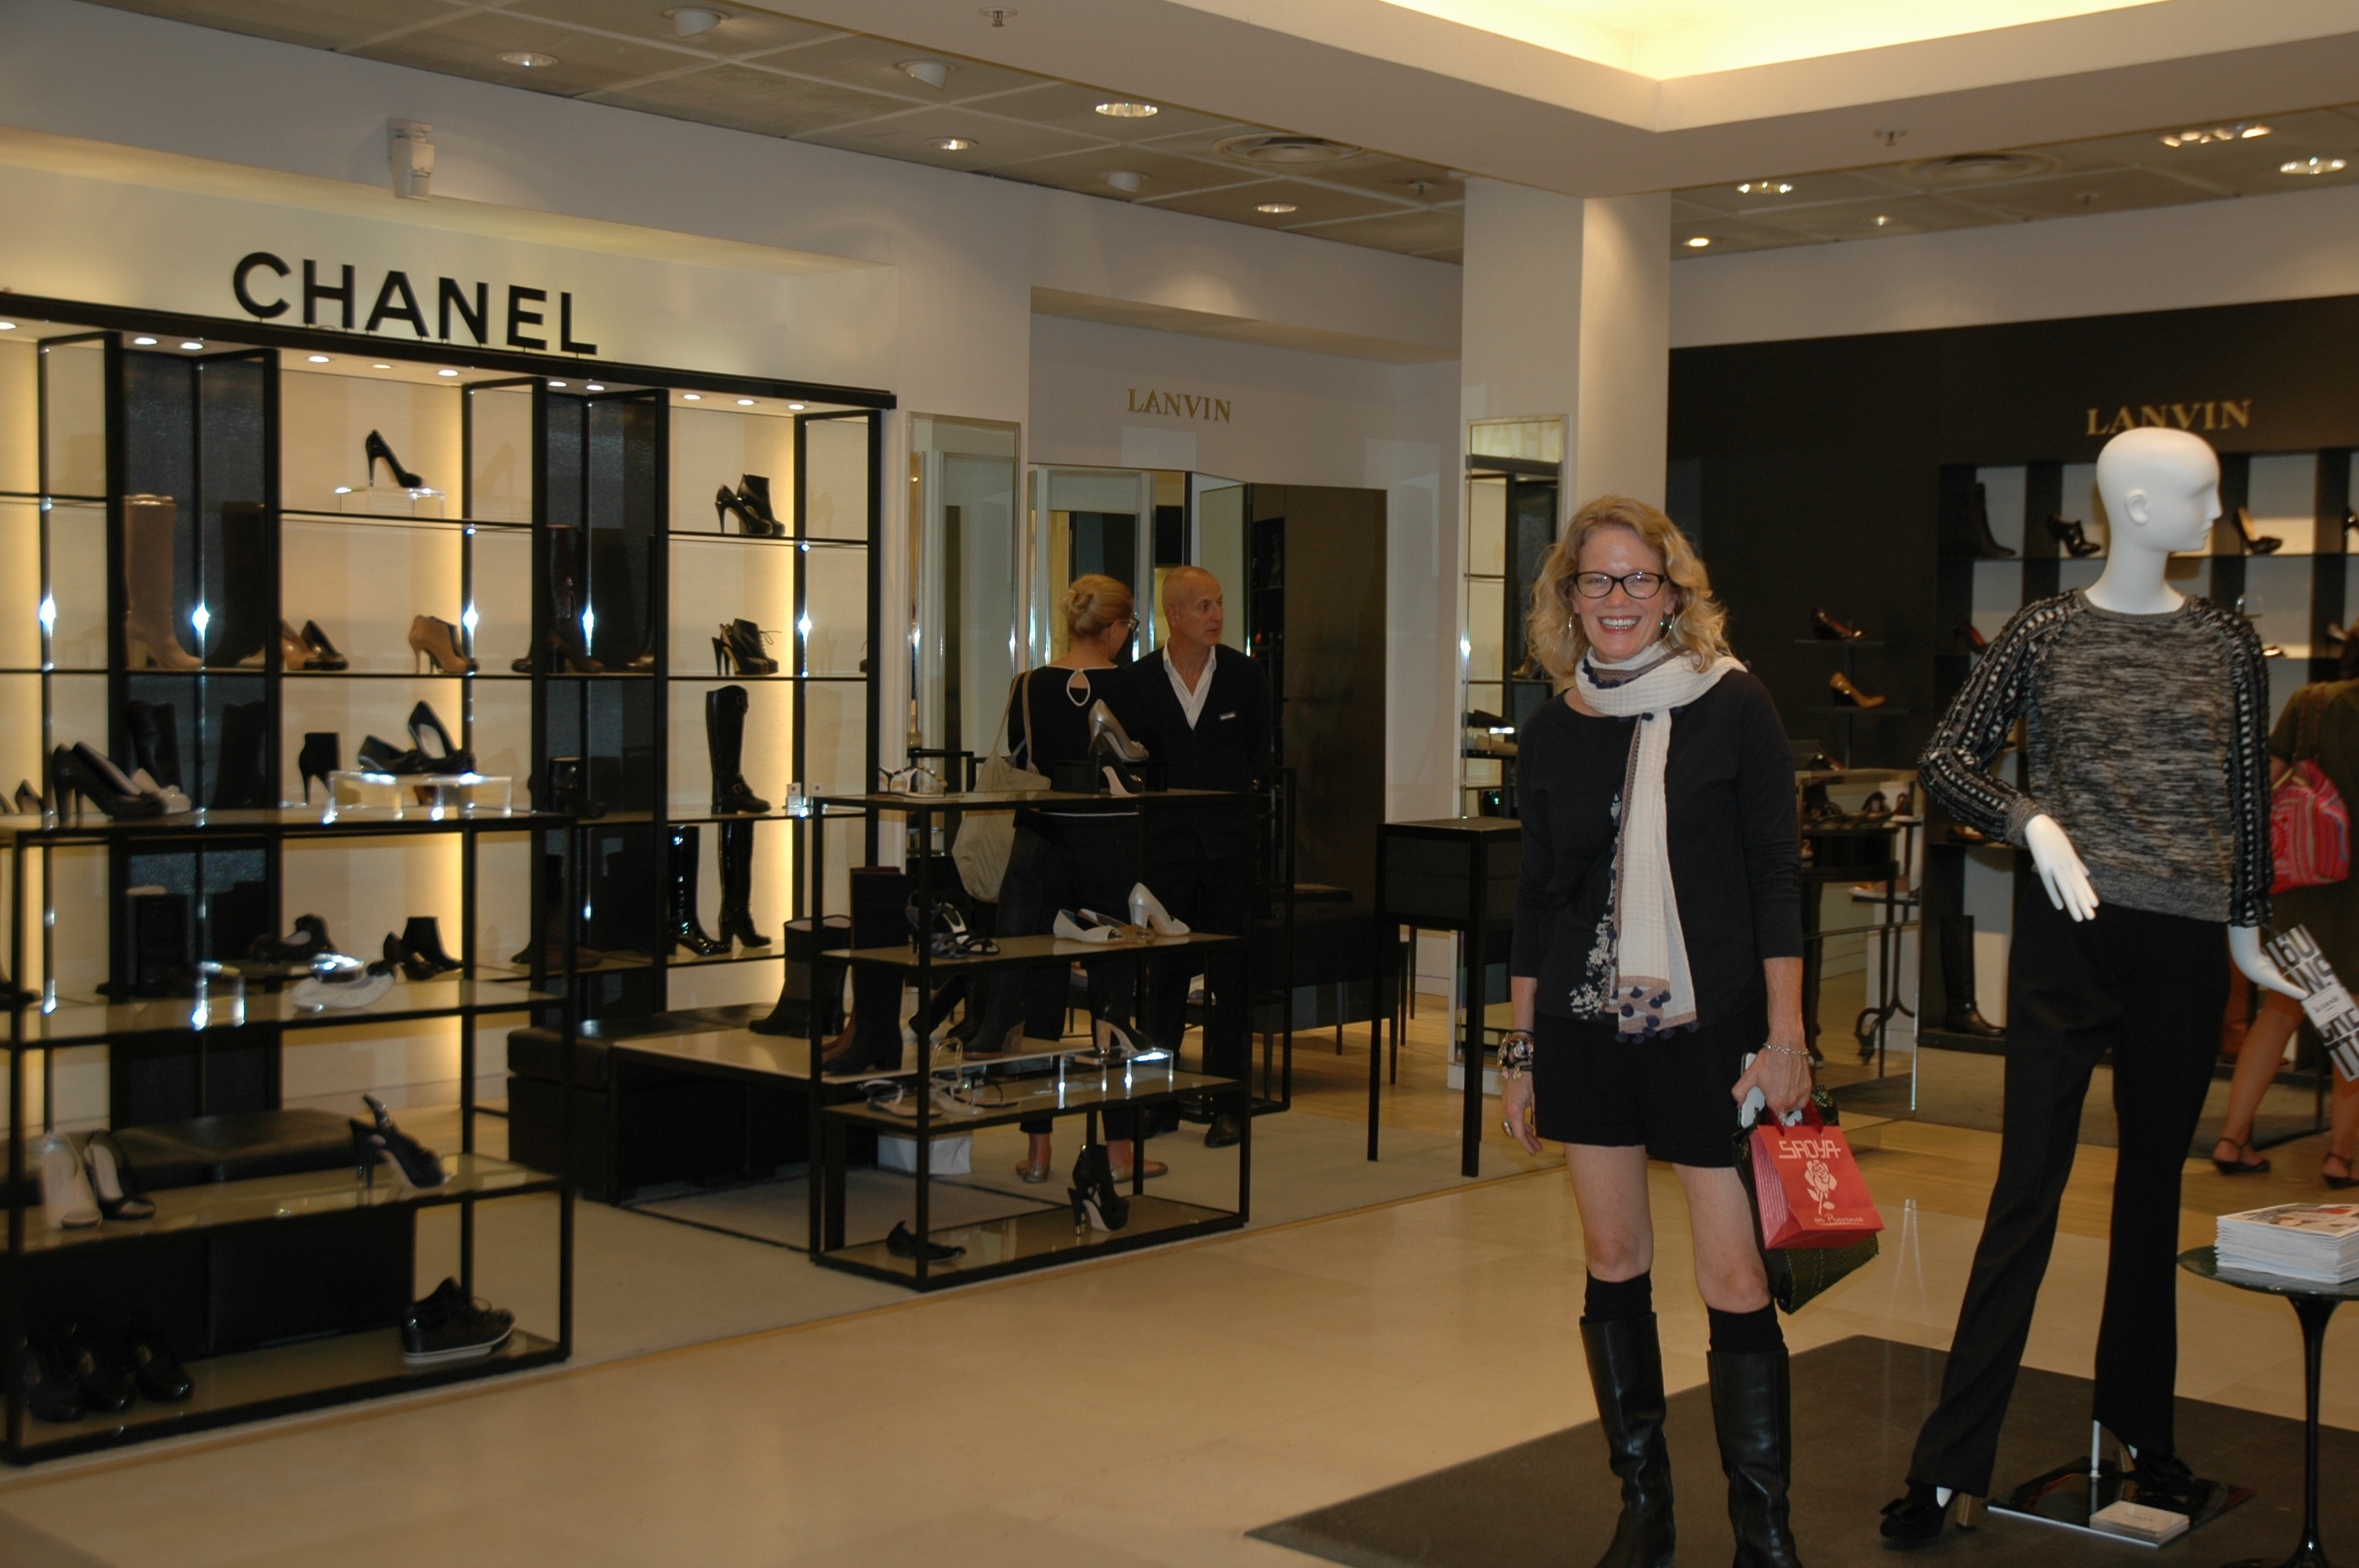 chanel bon marche store - photo#14